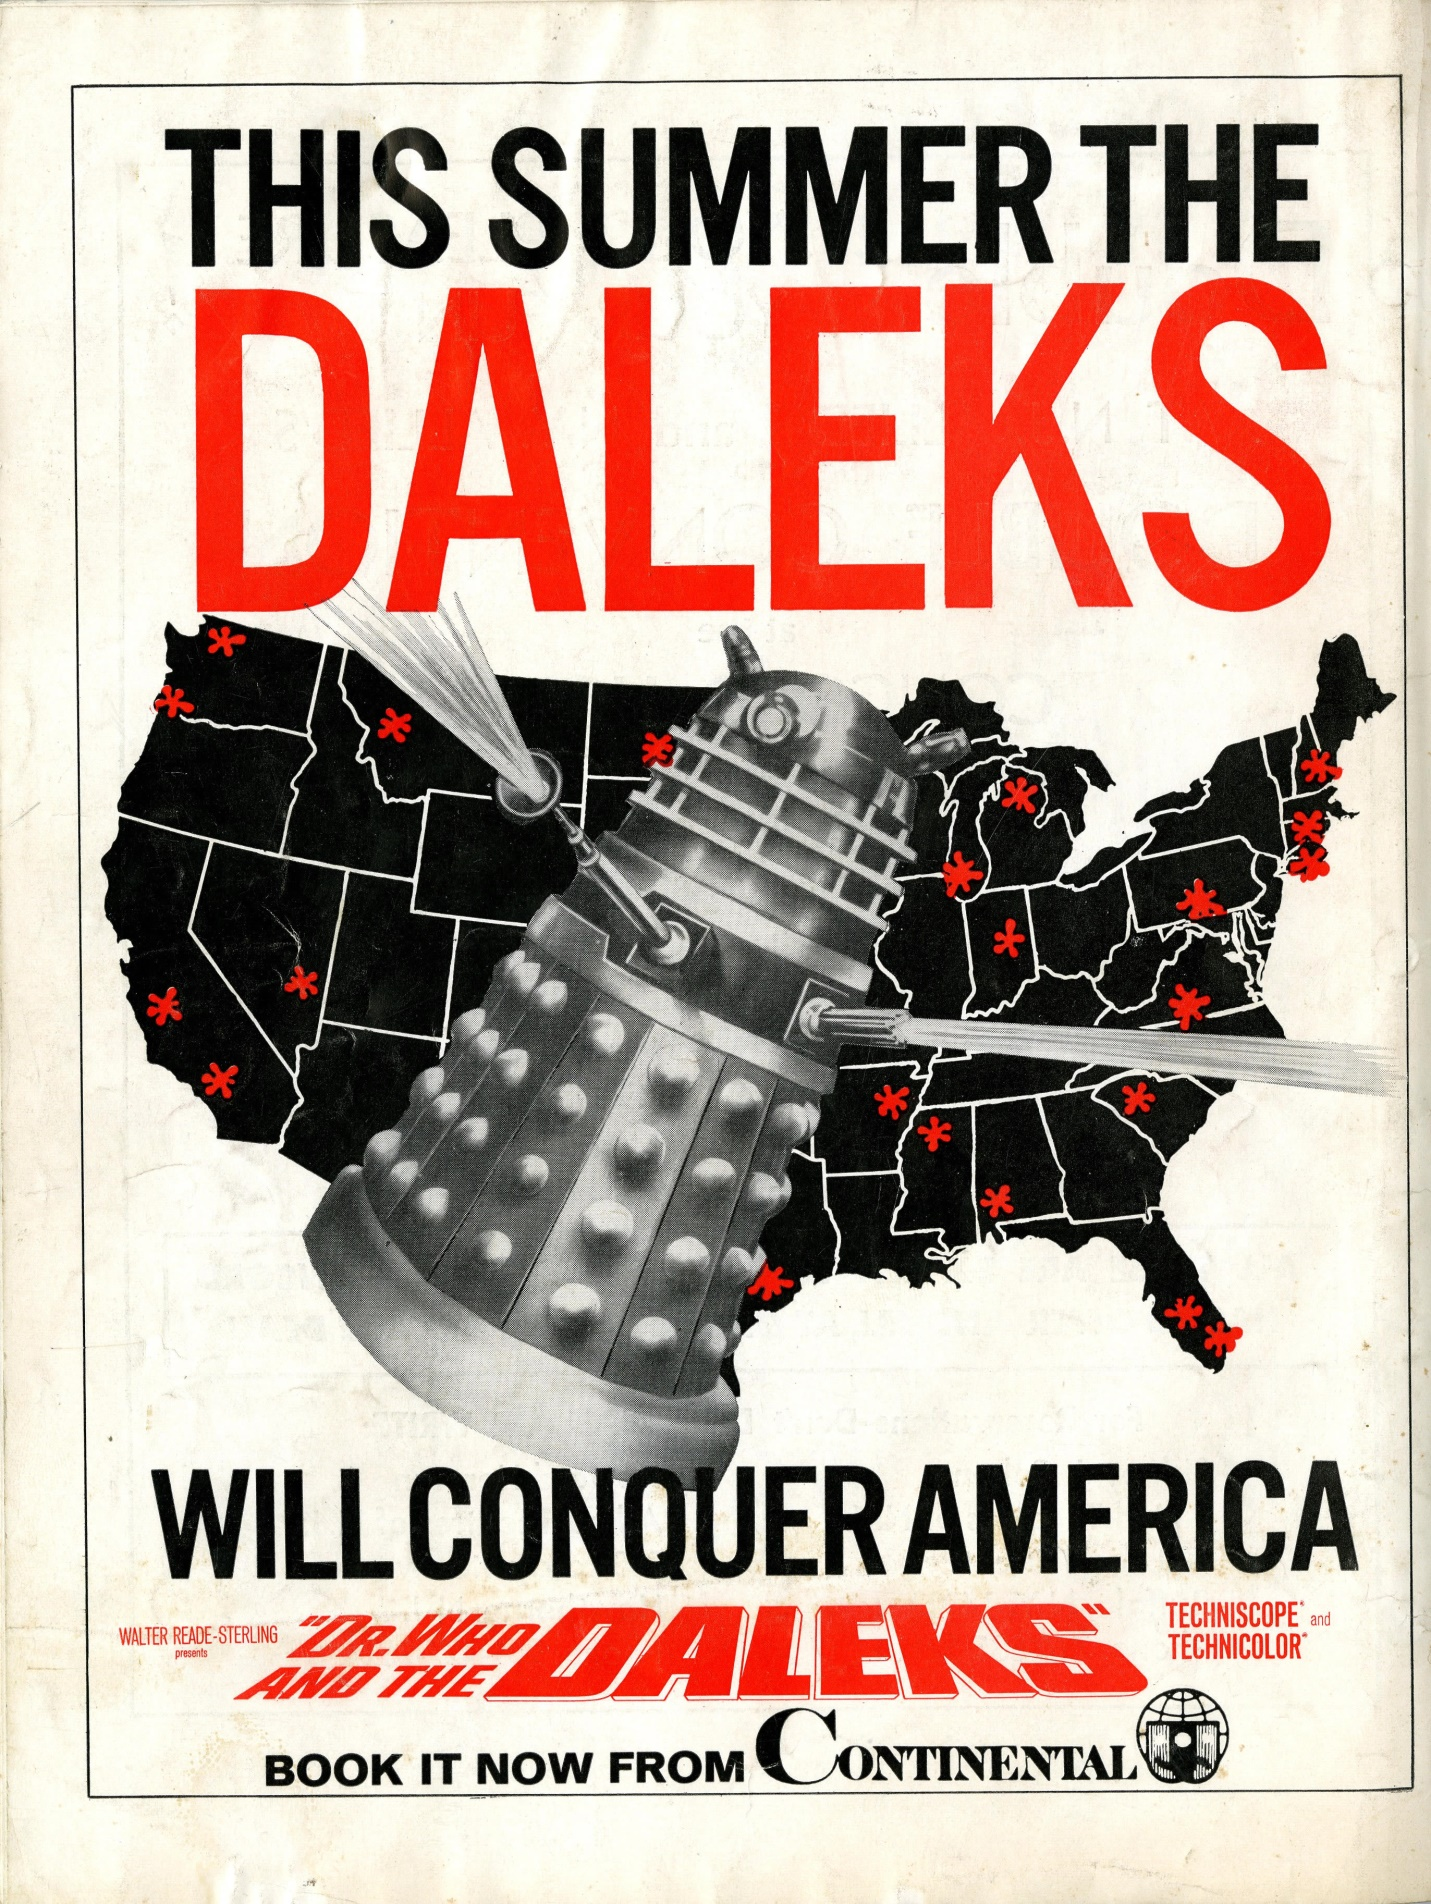 Motion Picture Herald, 6 July 1966. Ad. for the launch of Dr. Who and the Daleks in the USA.